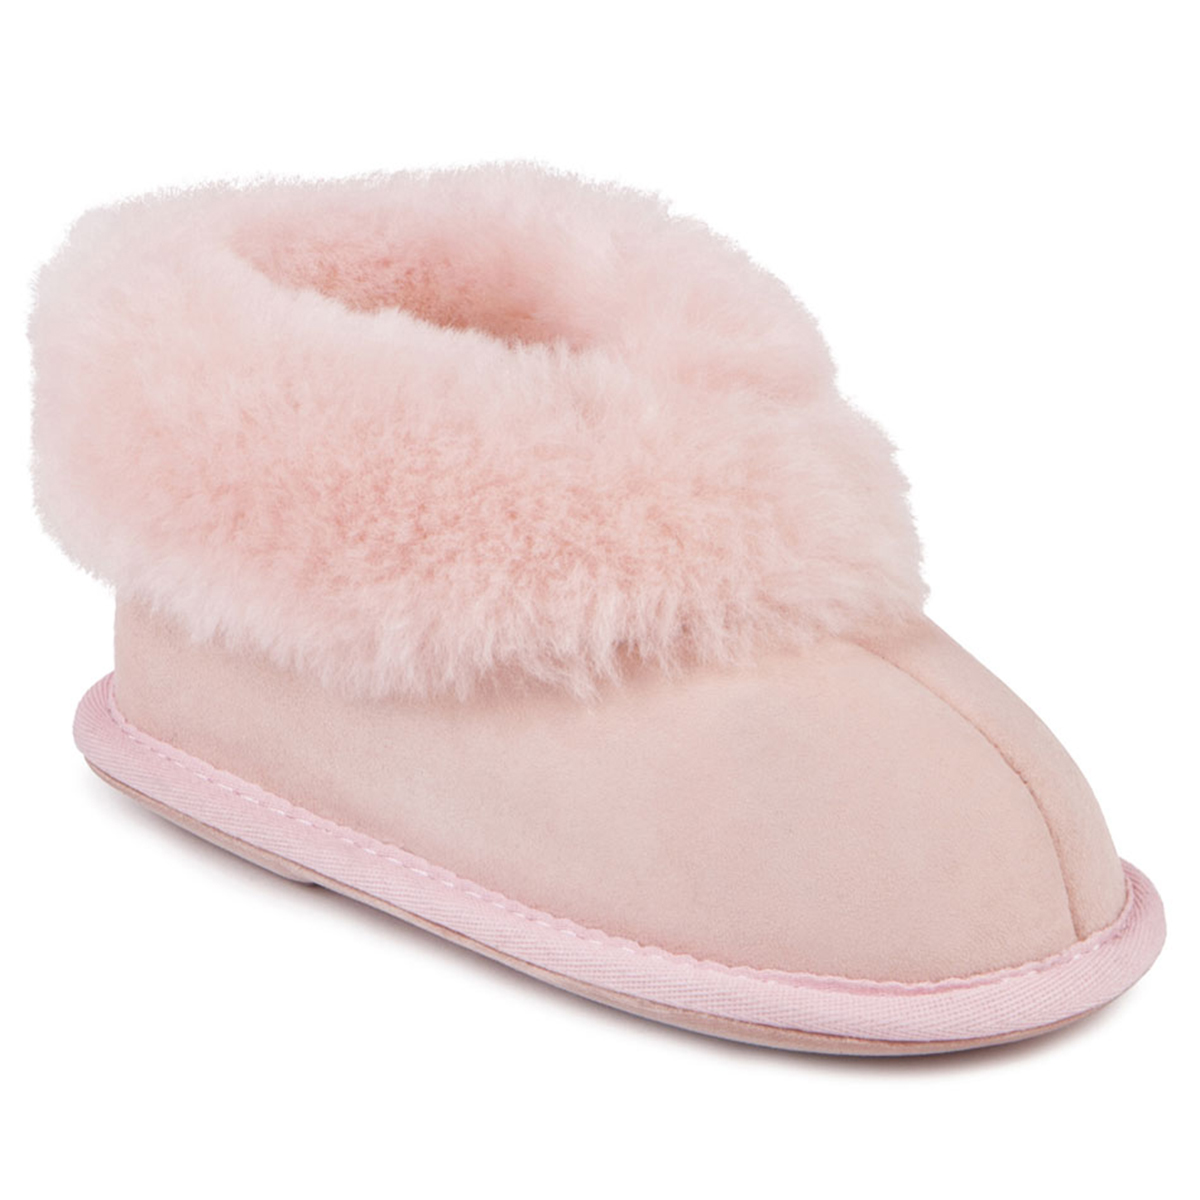 9680dd9e6a99 Childrens Classic Sheepskin Slippers Baby Pink